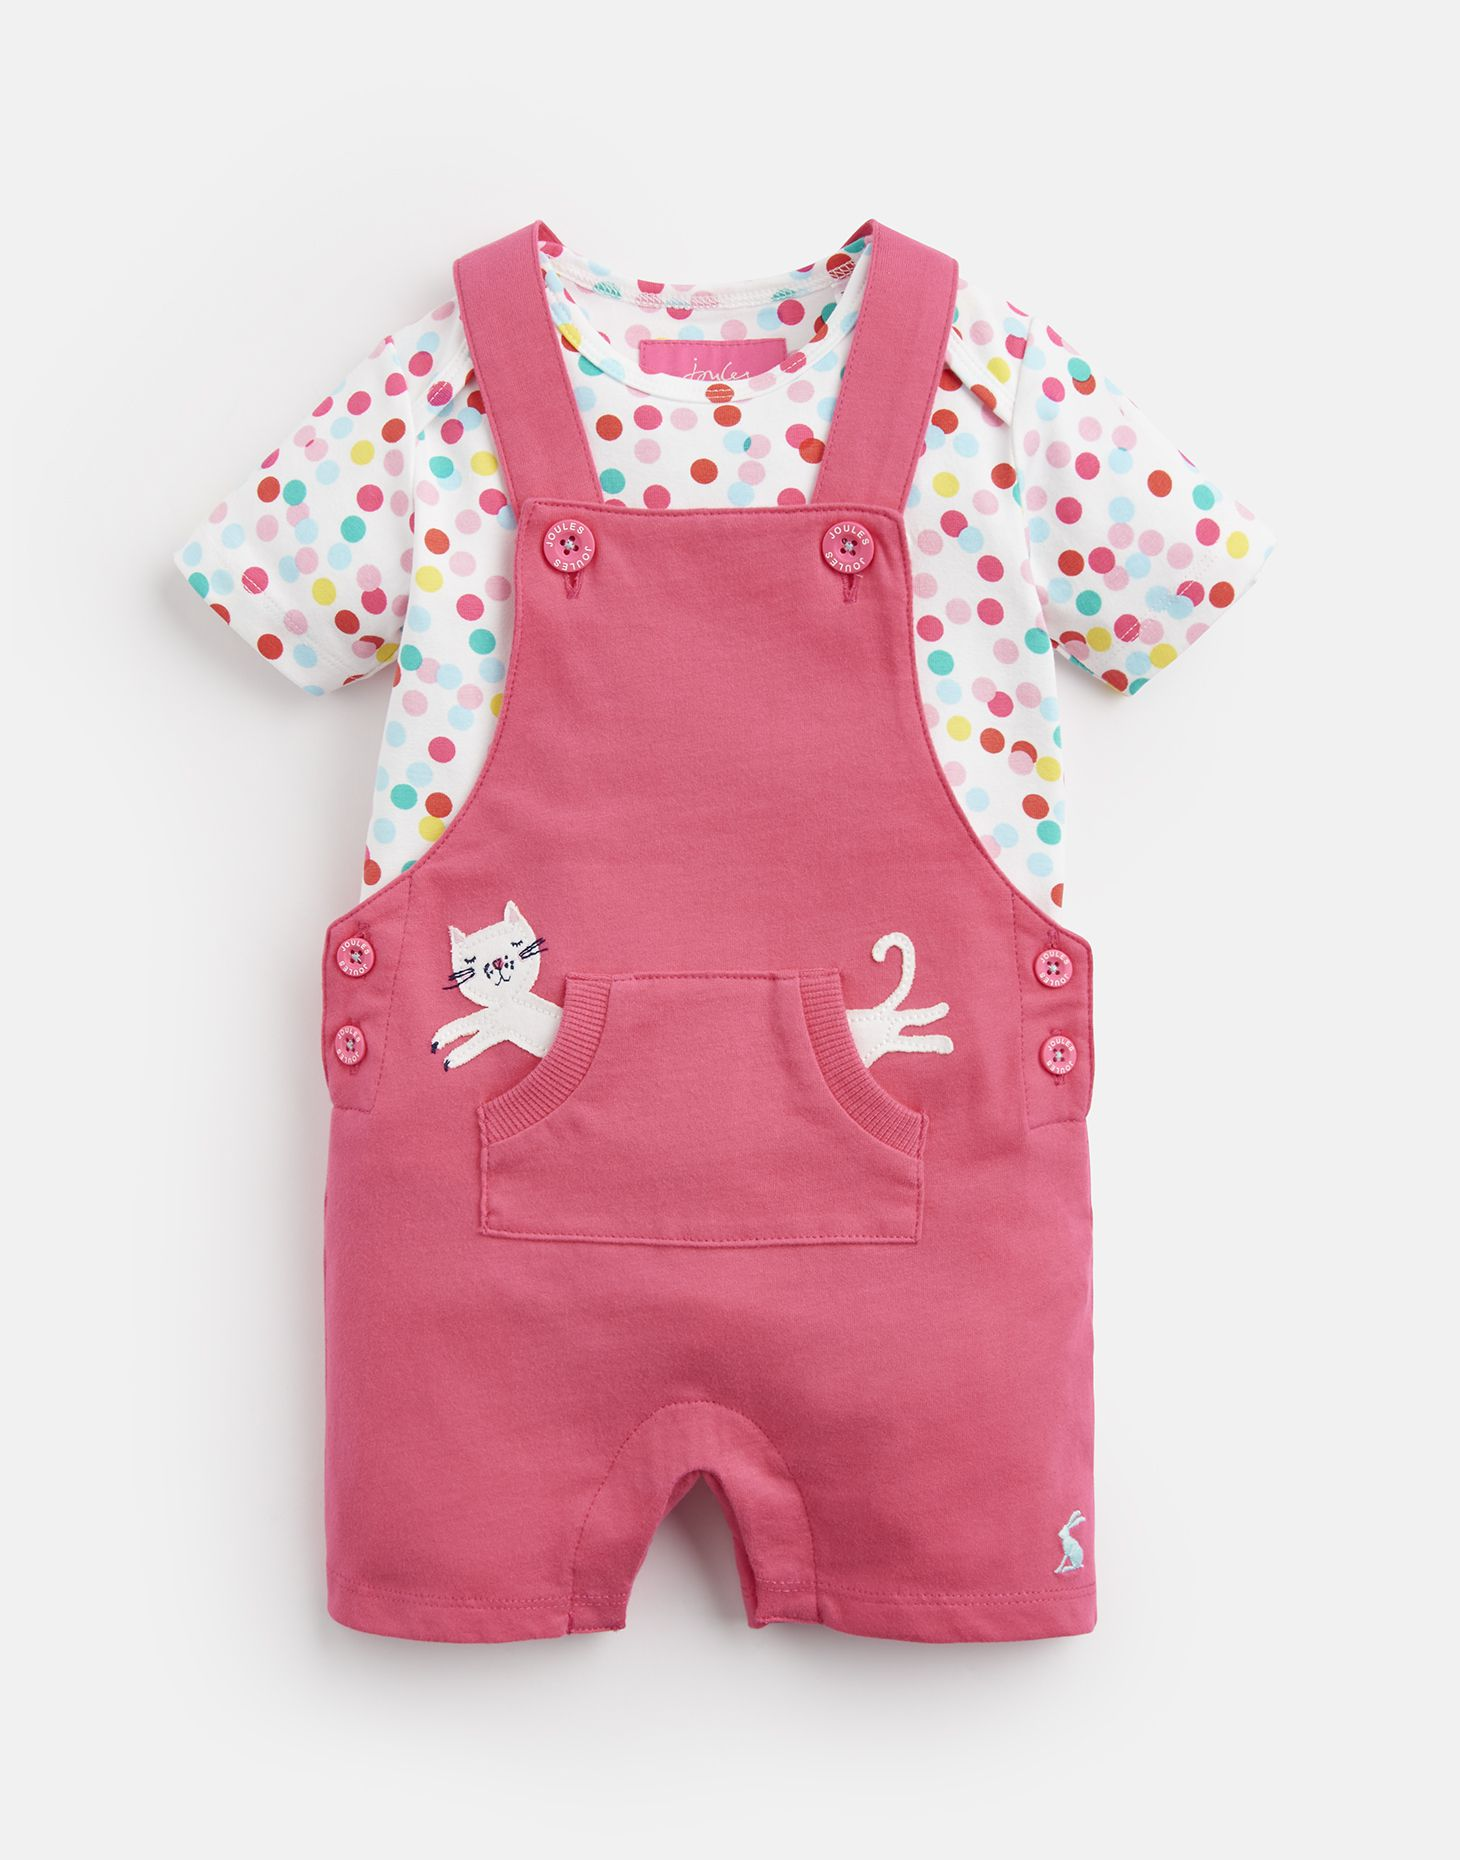 Girls' Clothing (0-24 Months) Responsible 18-24 Months Joules Dress